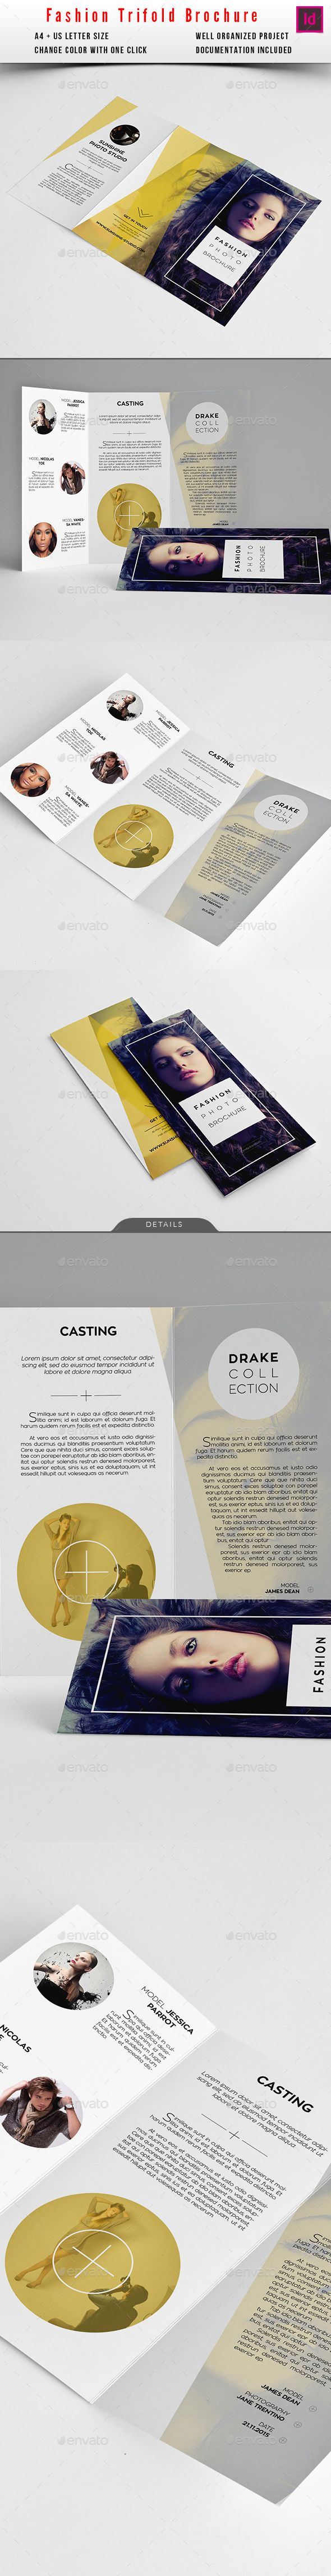 Fashion Trifold Brochure — InDesign Template #swiss #look • Download ➝ https://graphicriver.net/item/fashion-trifold-brochure/13373318?ref=pxcr